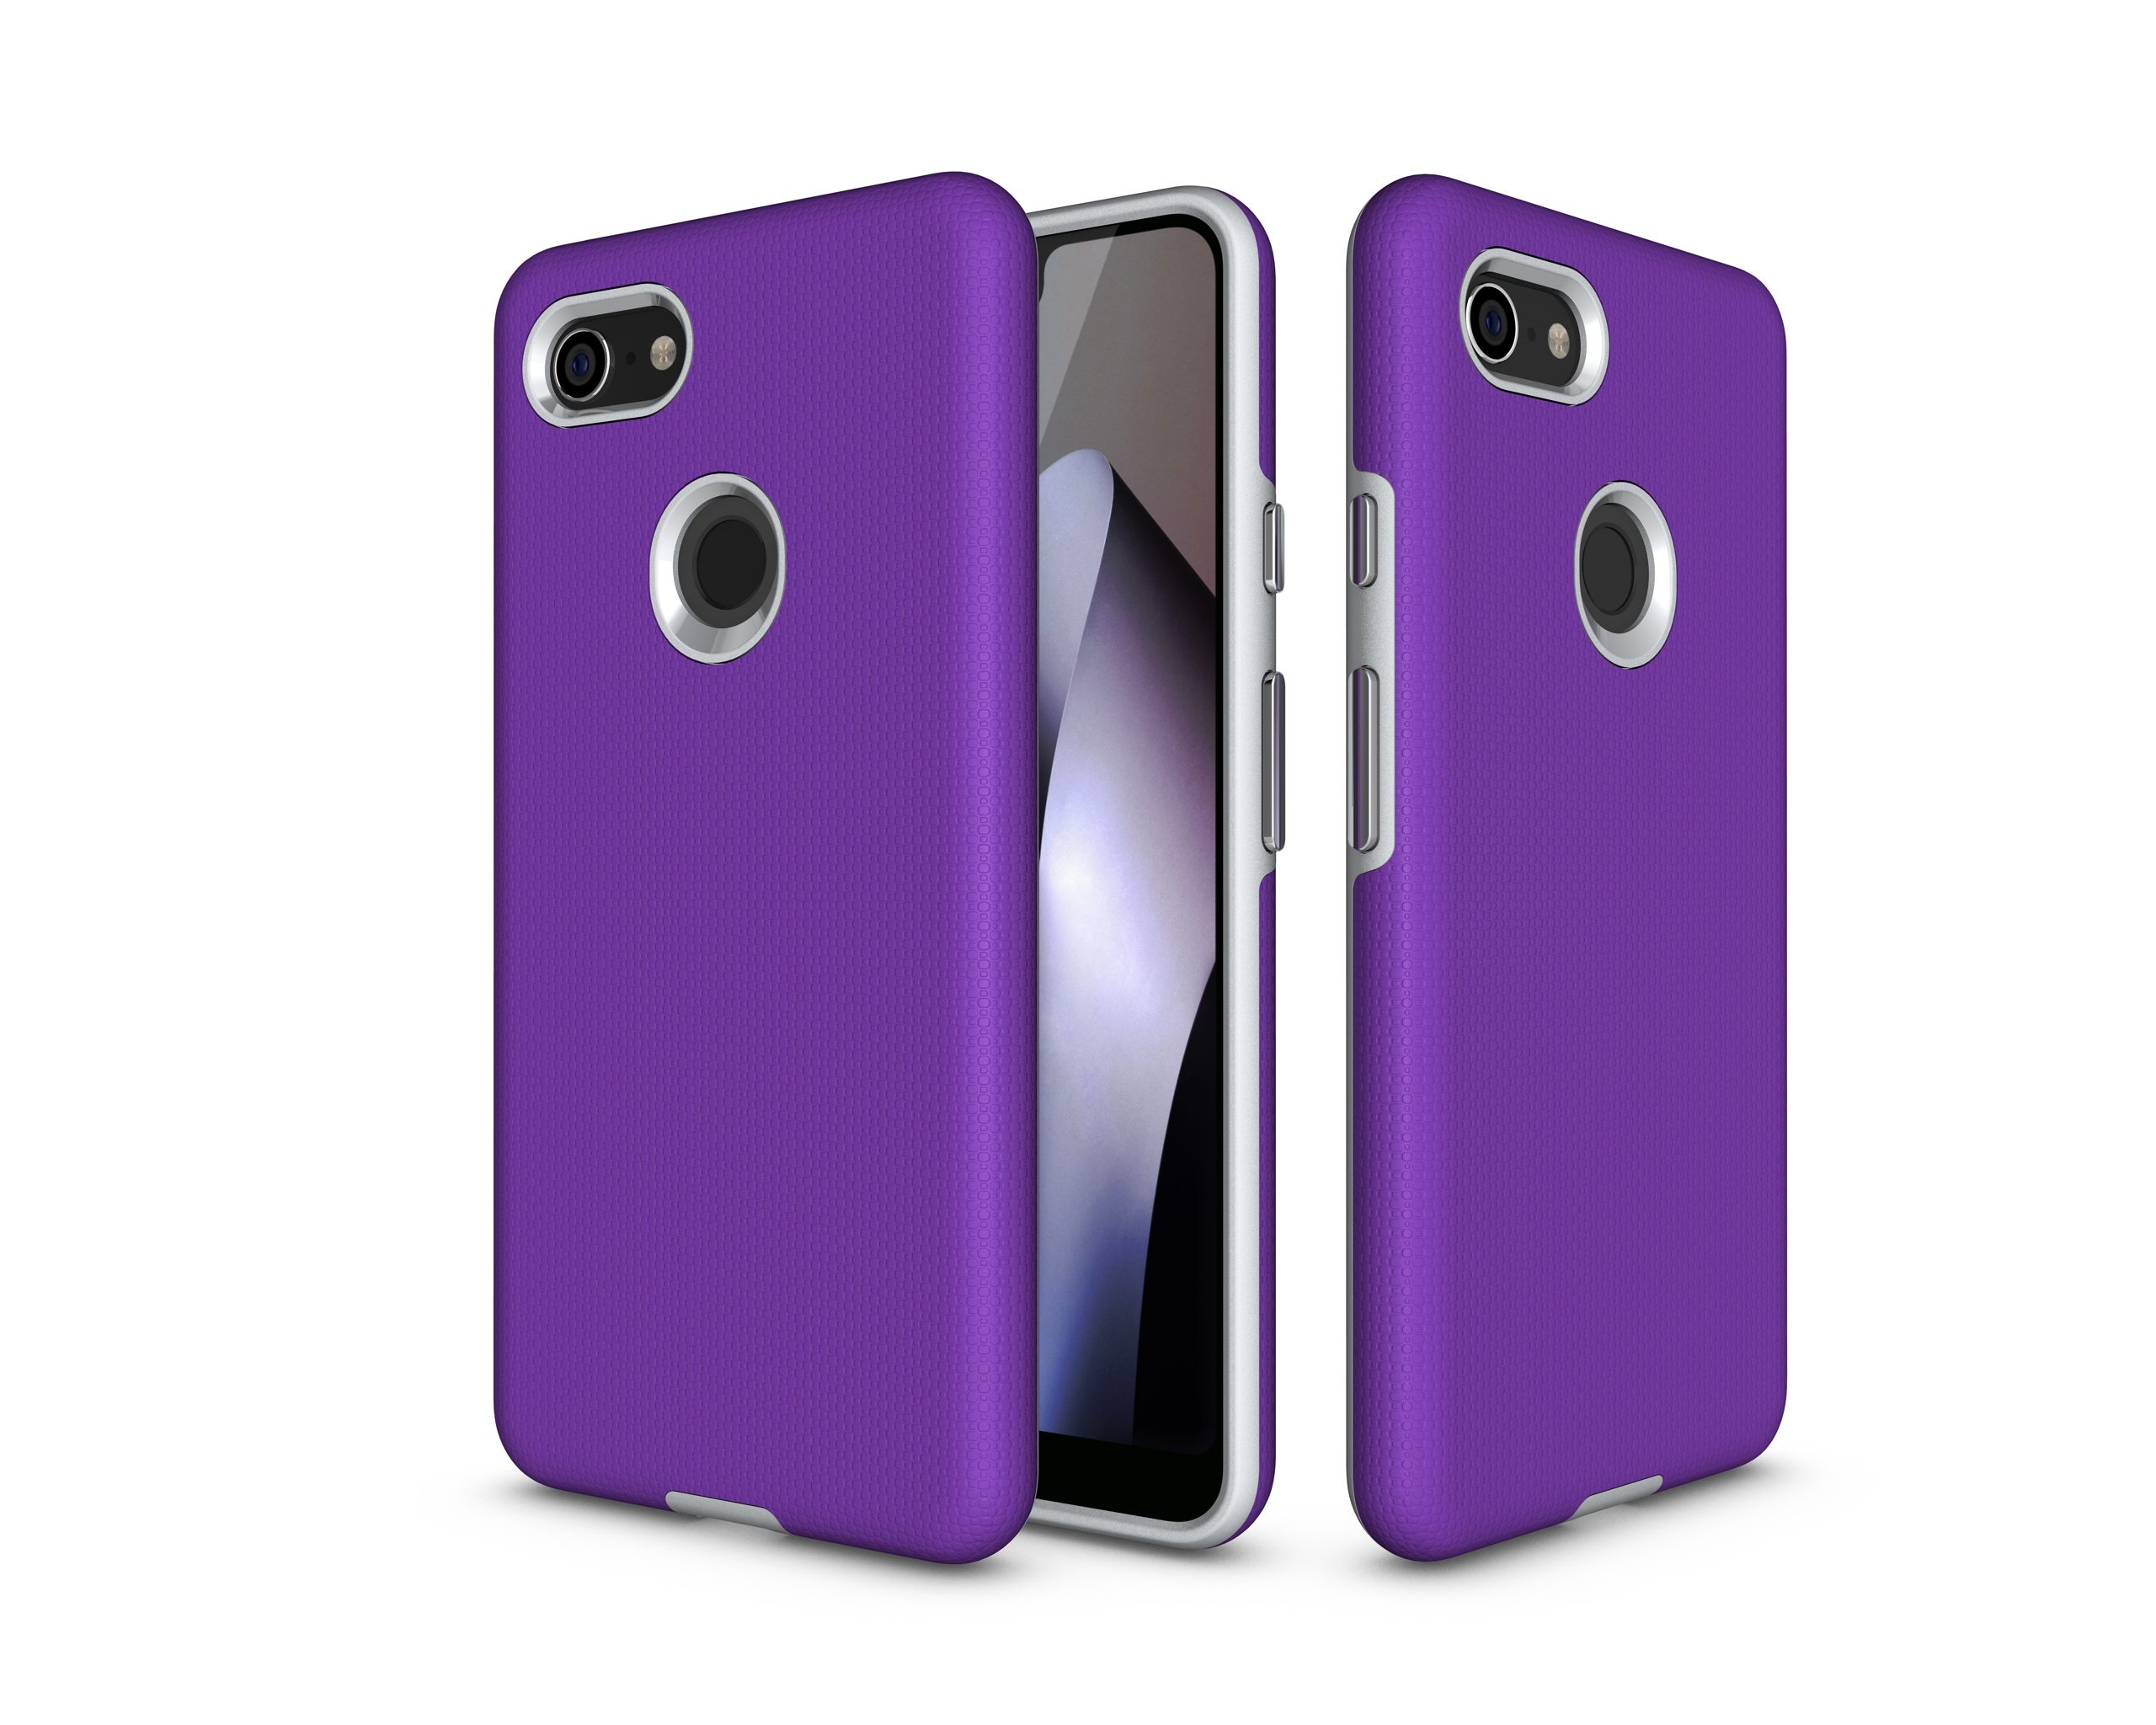 Dual Layer Armor Case For Google Pixel 3XL Rugged Shockproof Soft Silicone Hard PC Non-Slip Protective Case For Google Pixel 3XL